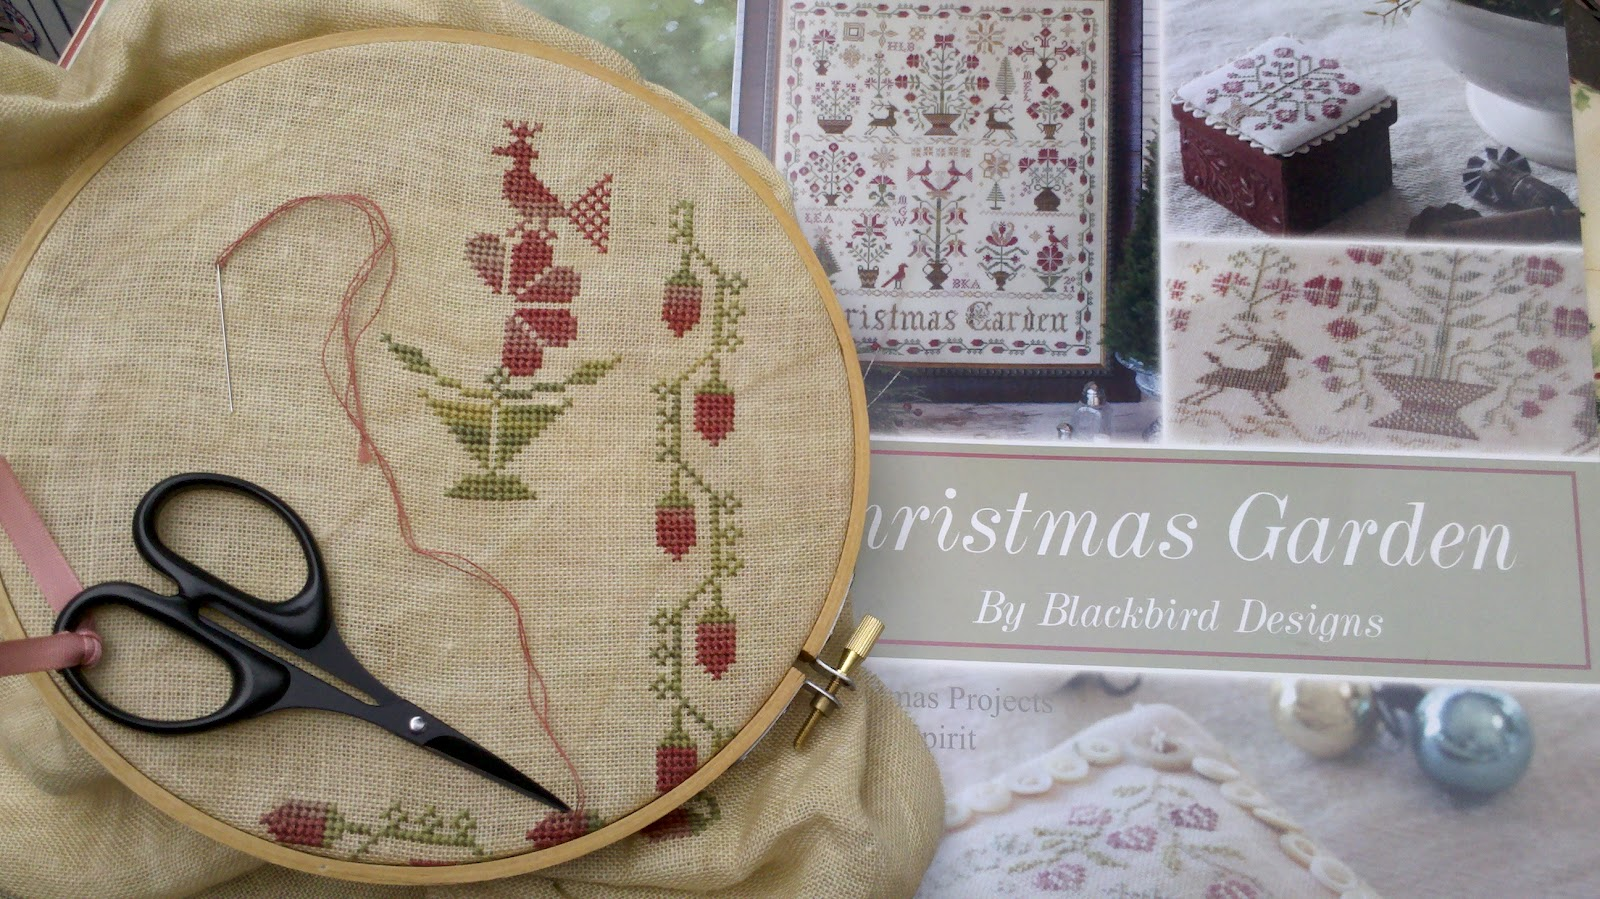 Karen 39 s quilts crows and cardinals stitchin 39 in the for Christmas garden blackbird designs